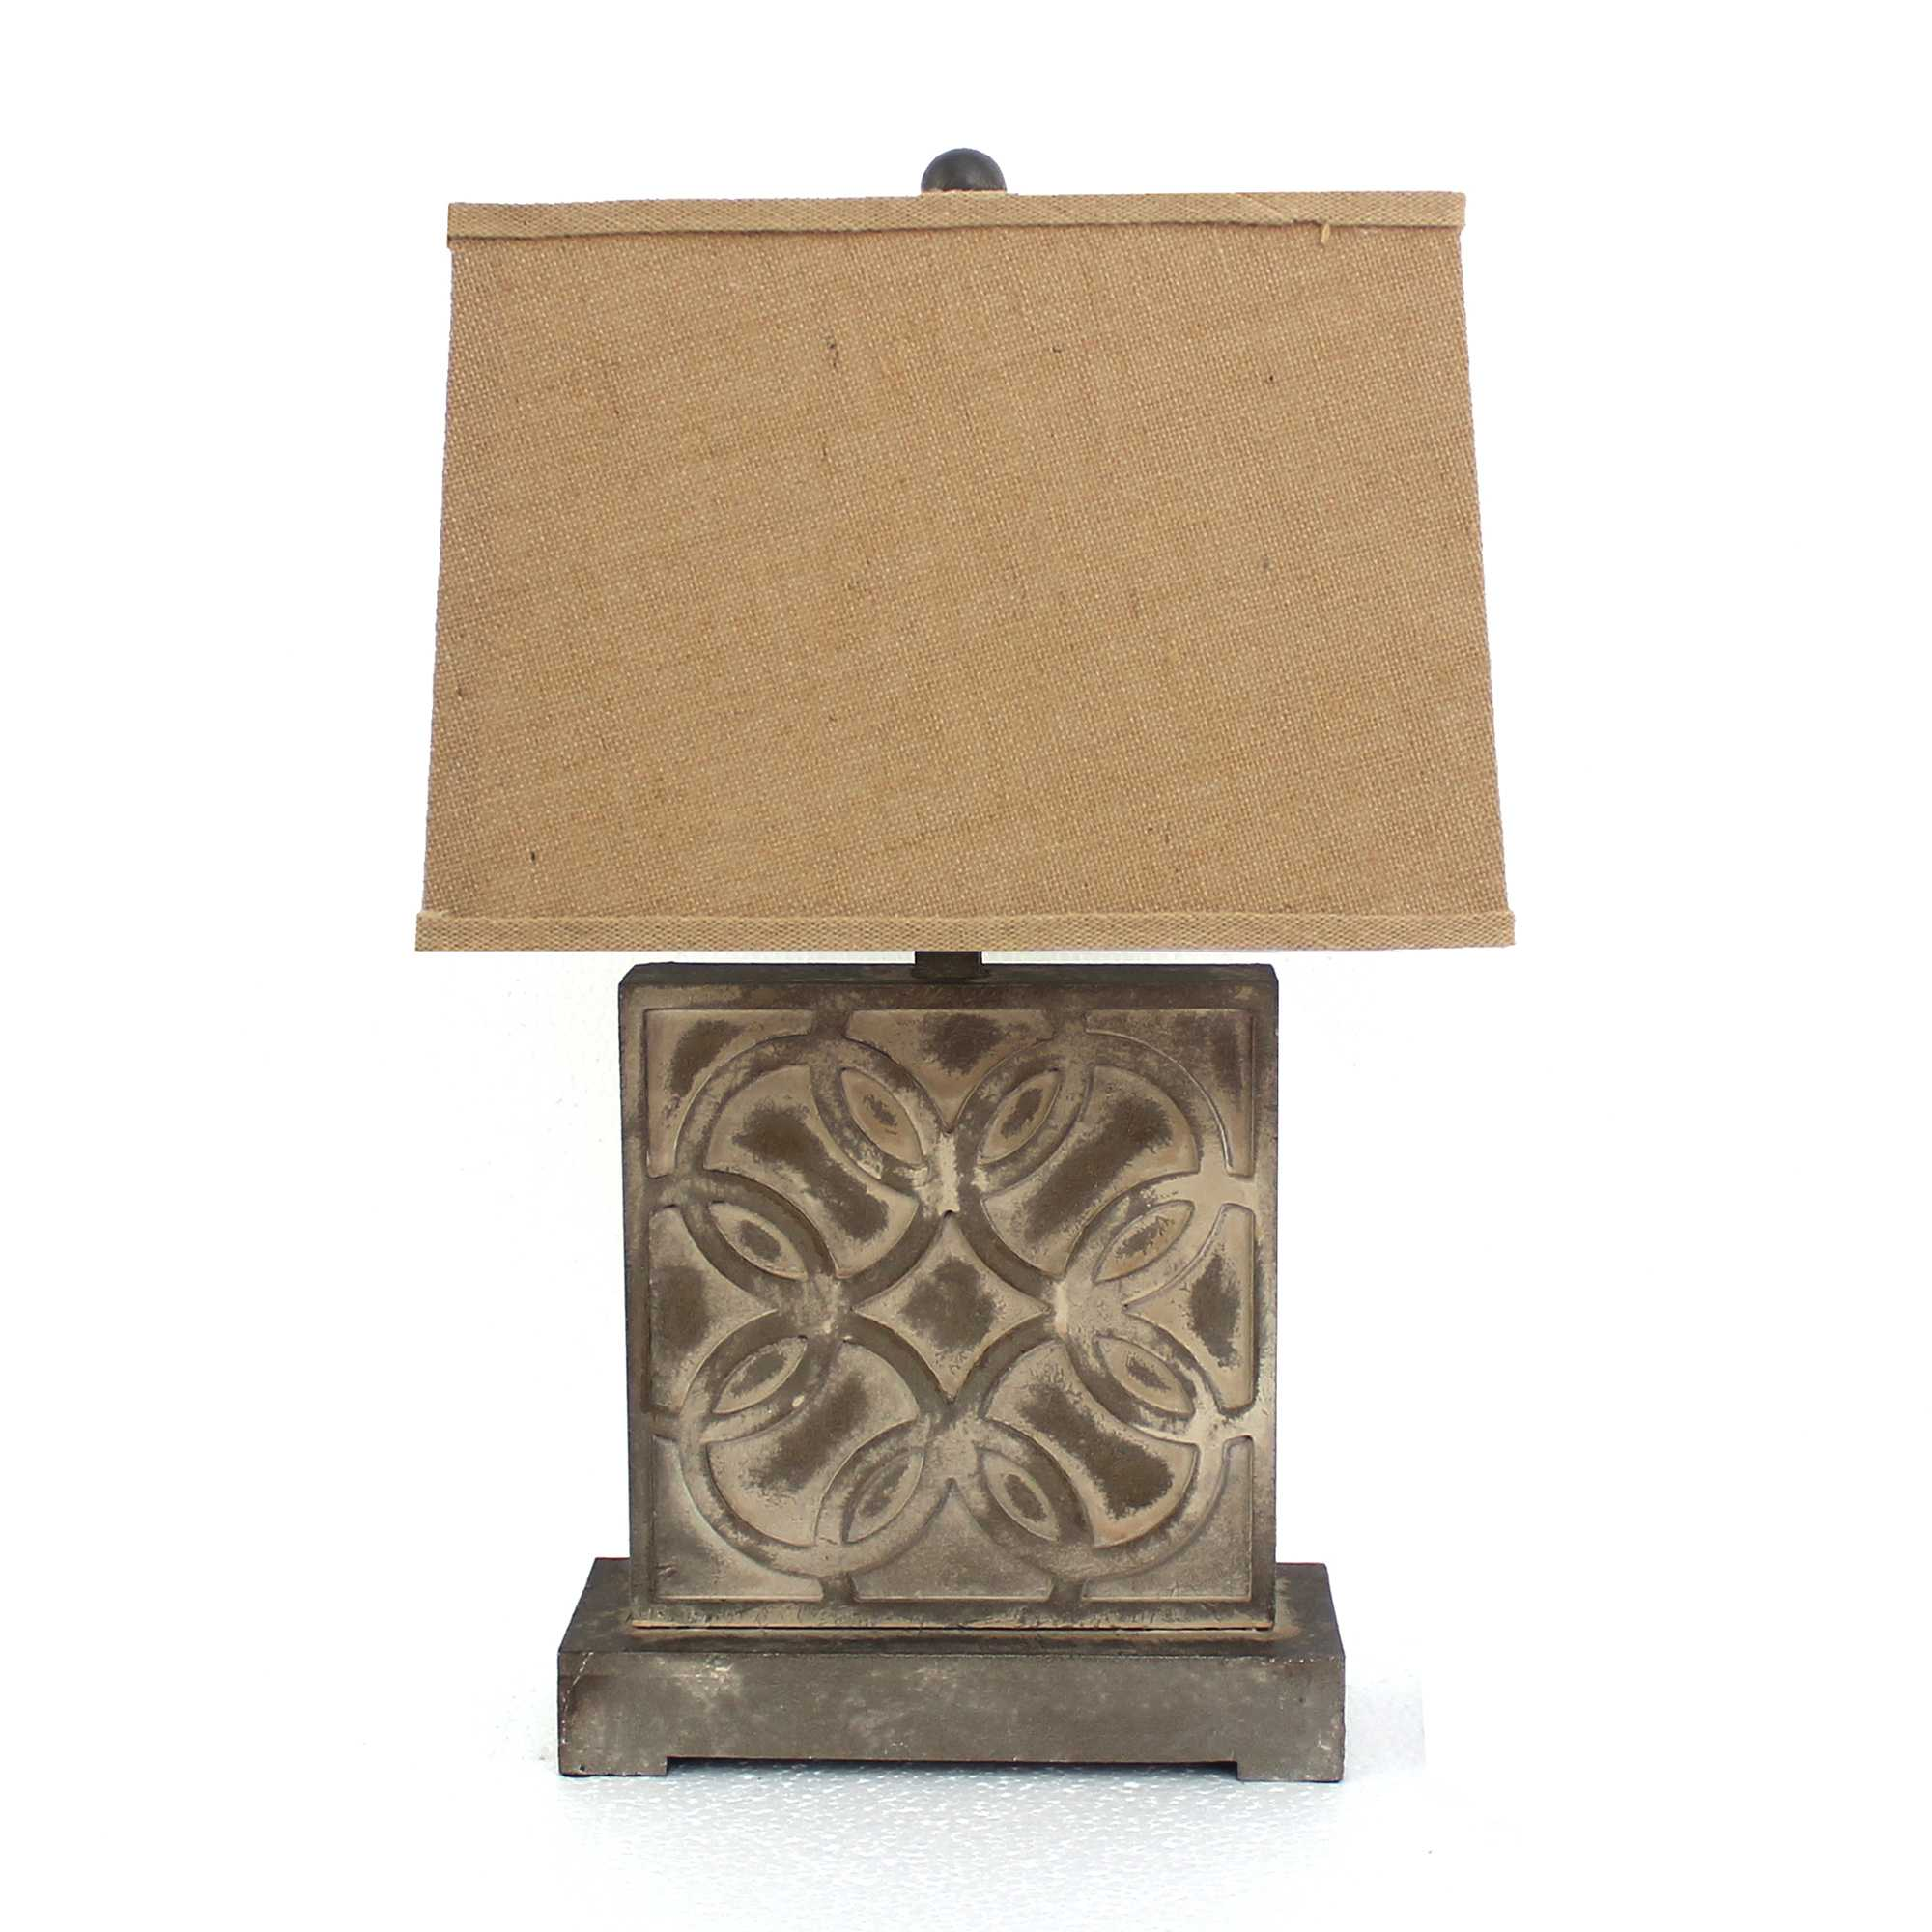 "4.75"" x 11.75"" x 24.75"" Brown, Vintage with Khaki Linen Shade - Table Lamp"